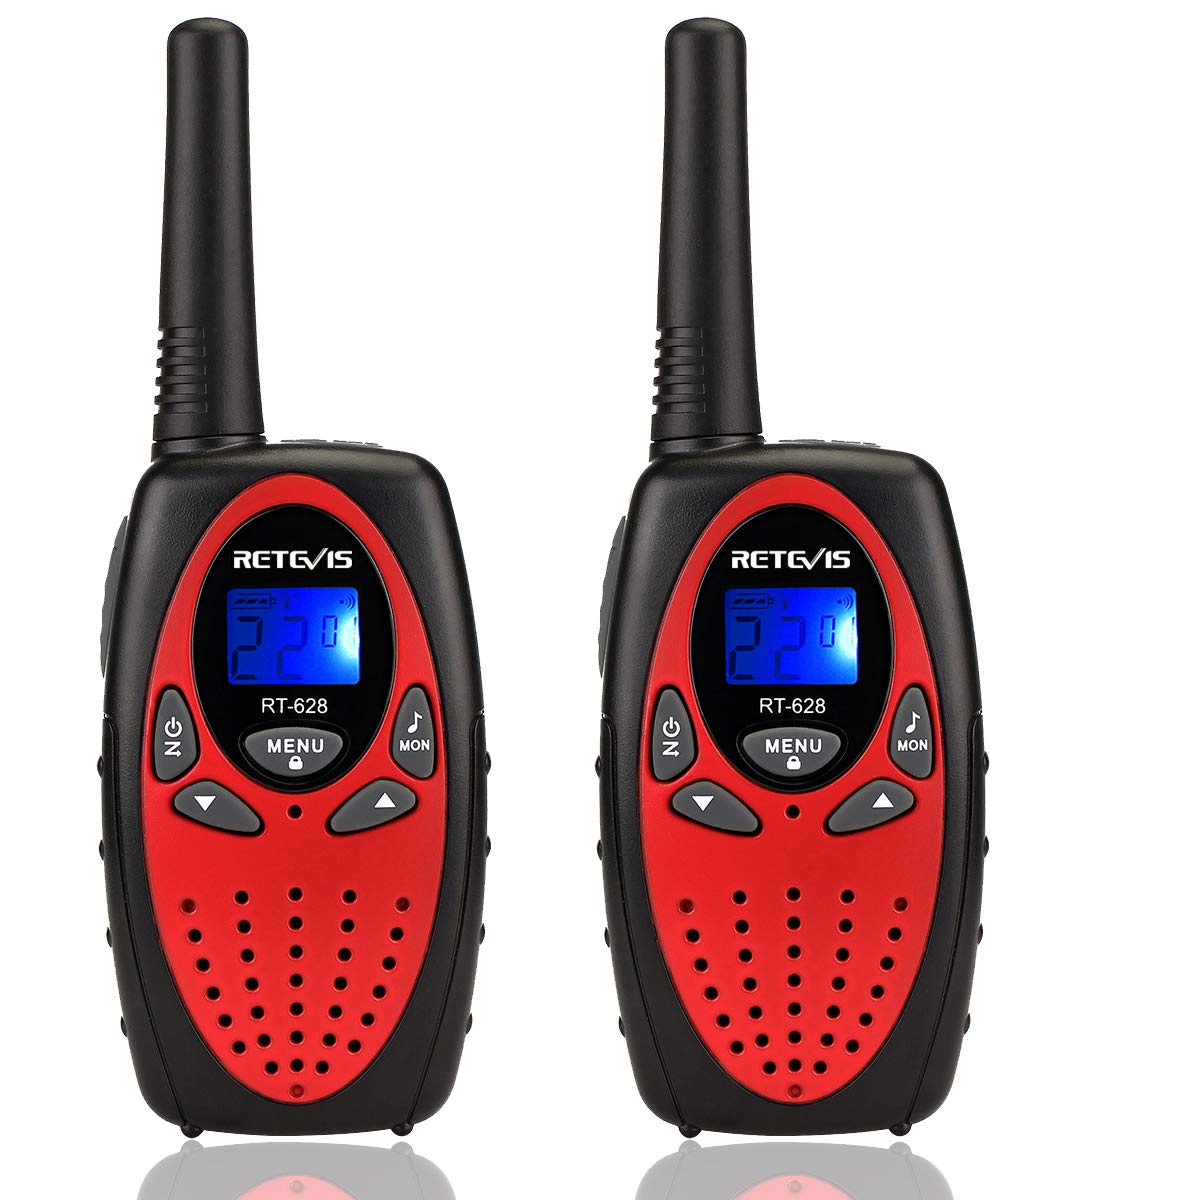 Retevis RT628 Kids Walkie Talkies 22 Channel FRS Toy for Kids Uhf FRS 2 Way Radio Toy(Red, 2 Pack)